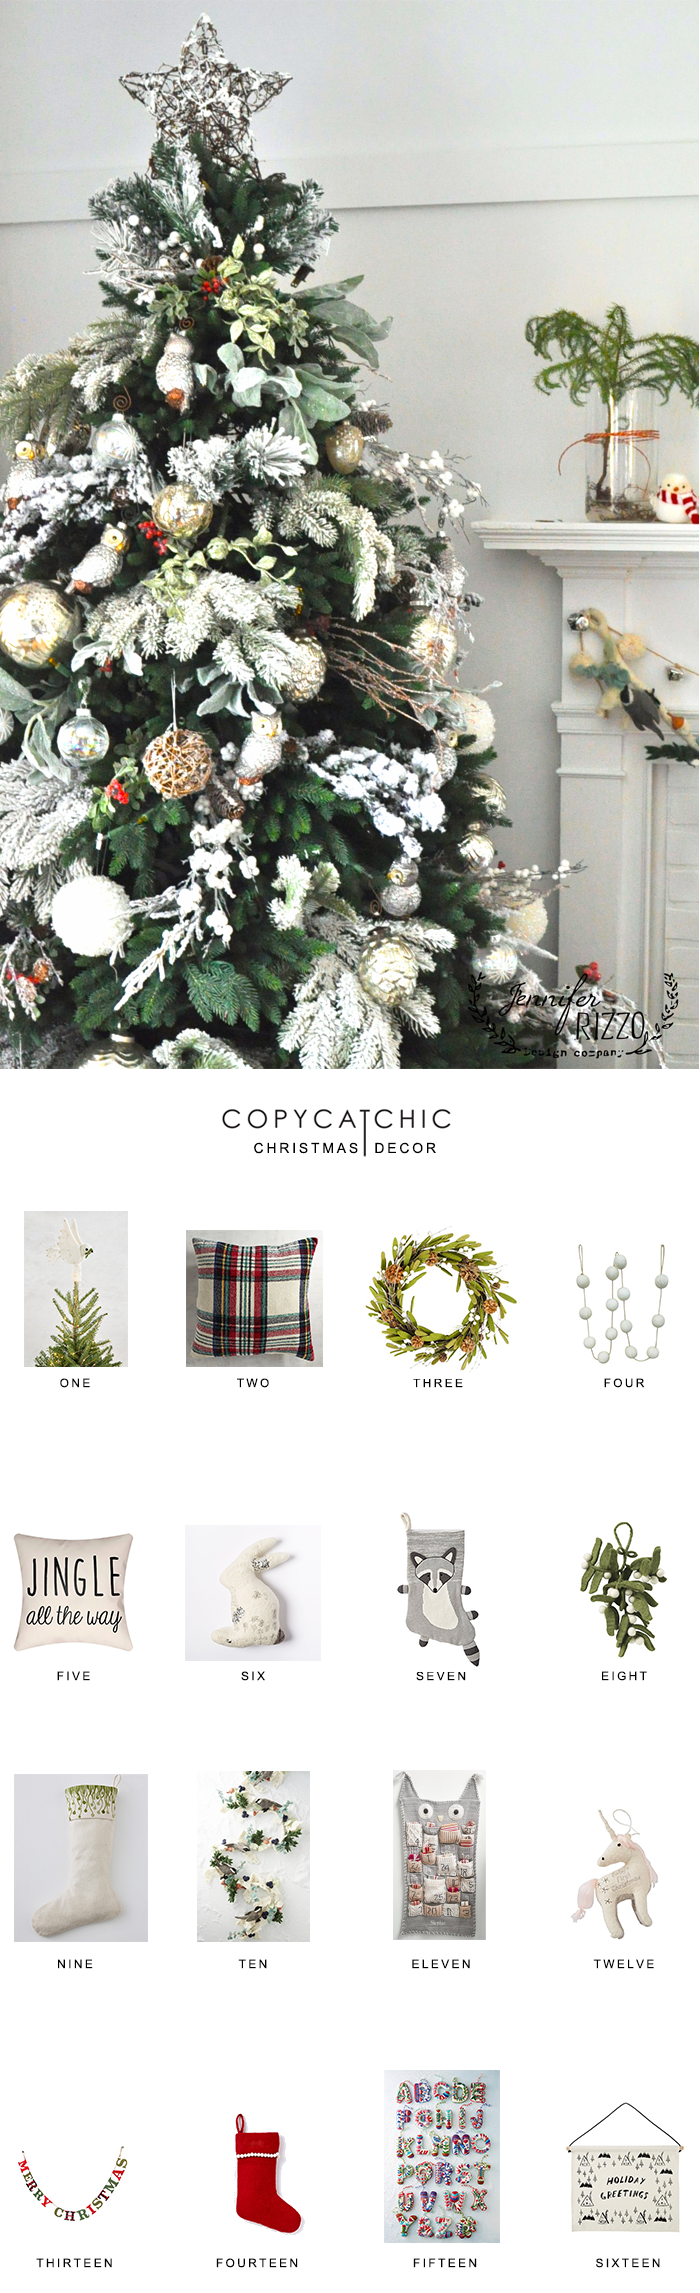 Have yourself a warm & fuzzy handmade Christmas with these vintage and folksy looking traditional holiday Christmas decorations. Copy Cat Chic luxe for less